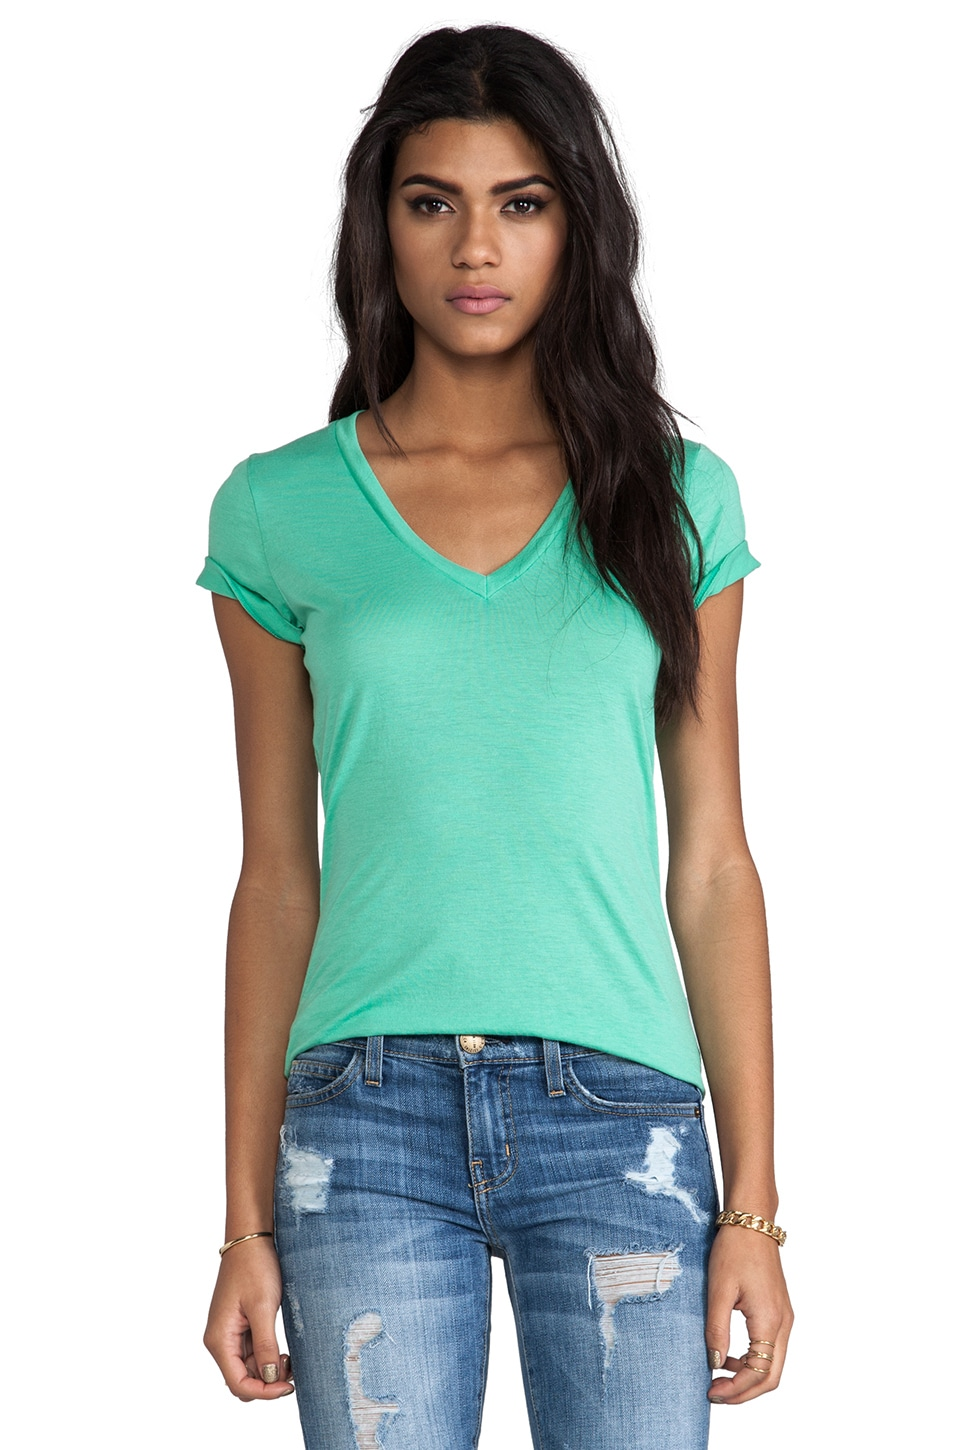 Splendid Very Light Jersey Tee in Beach Glass